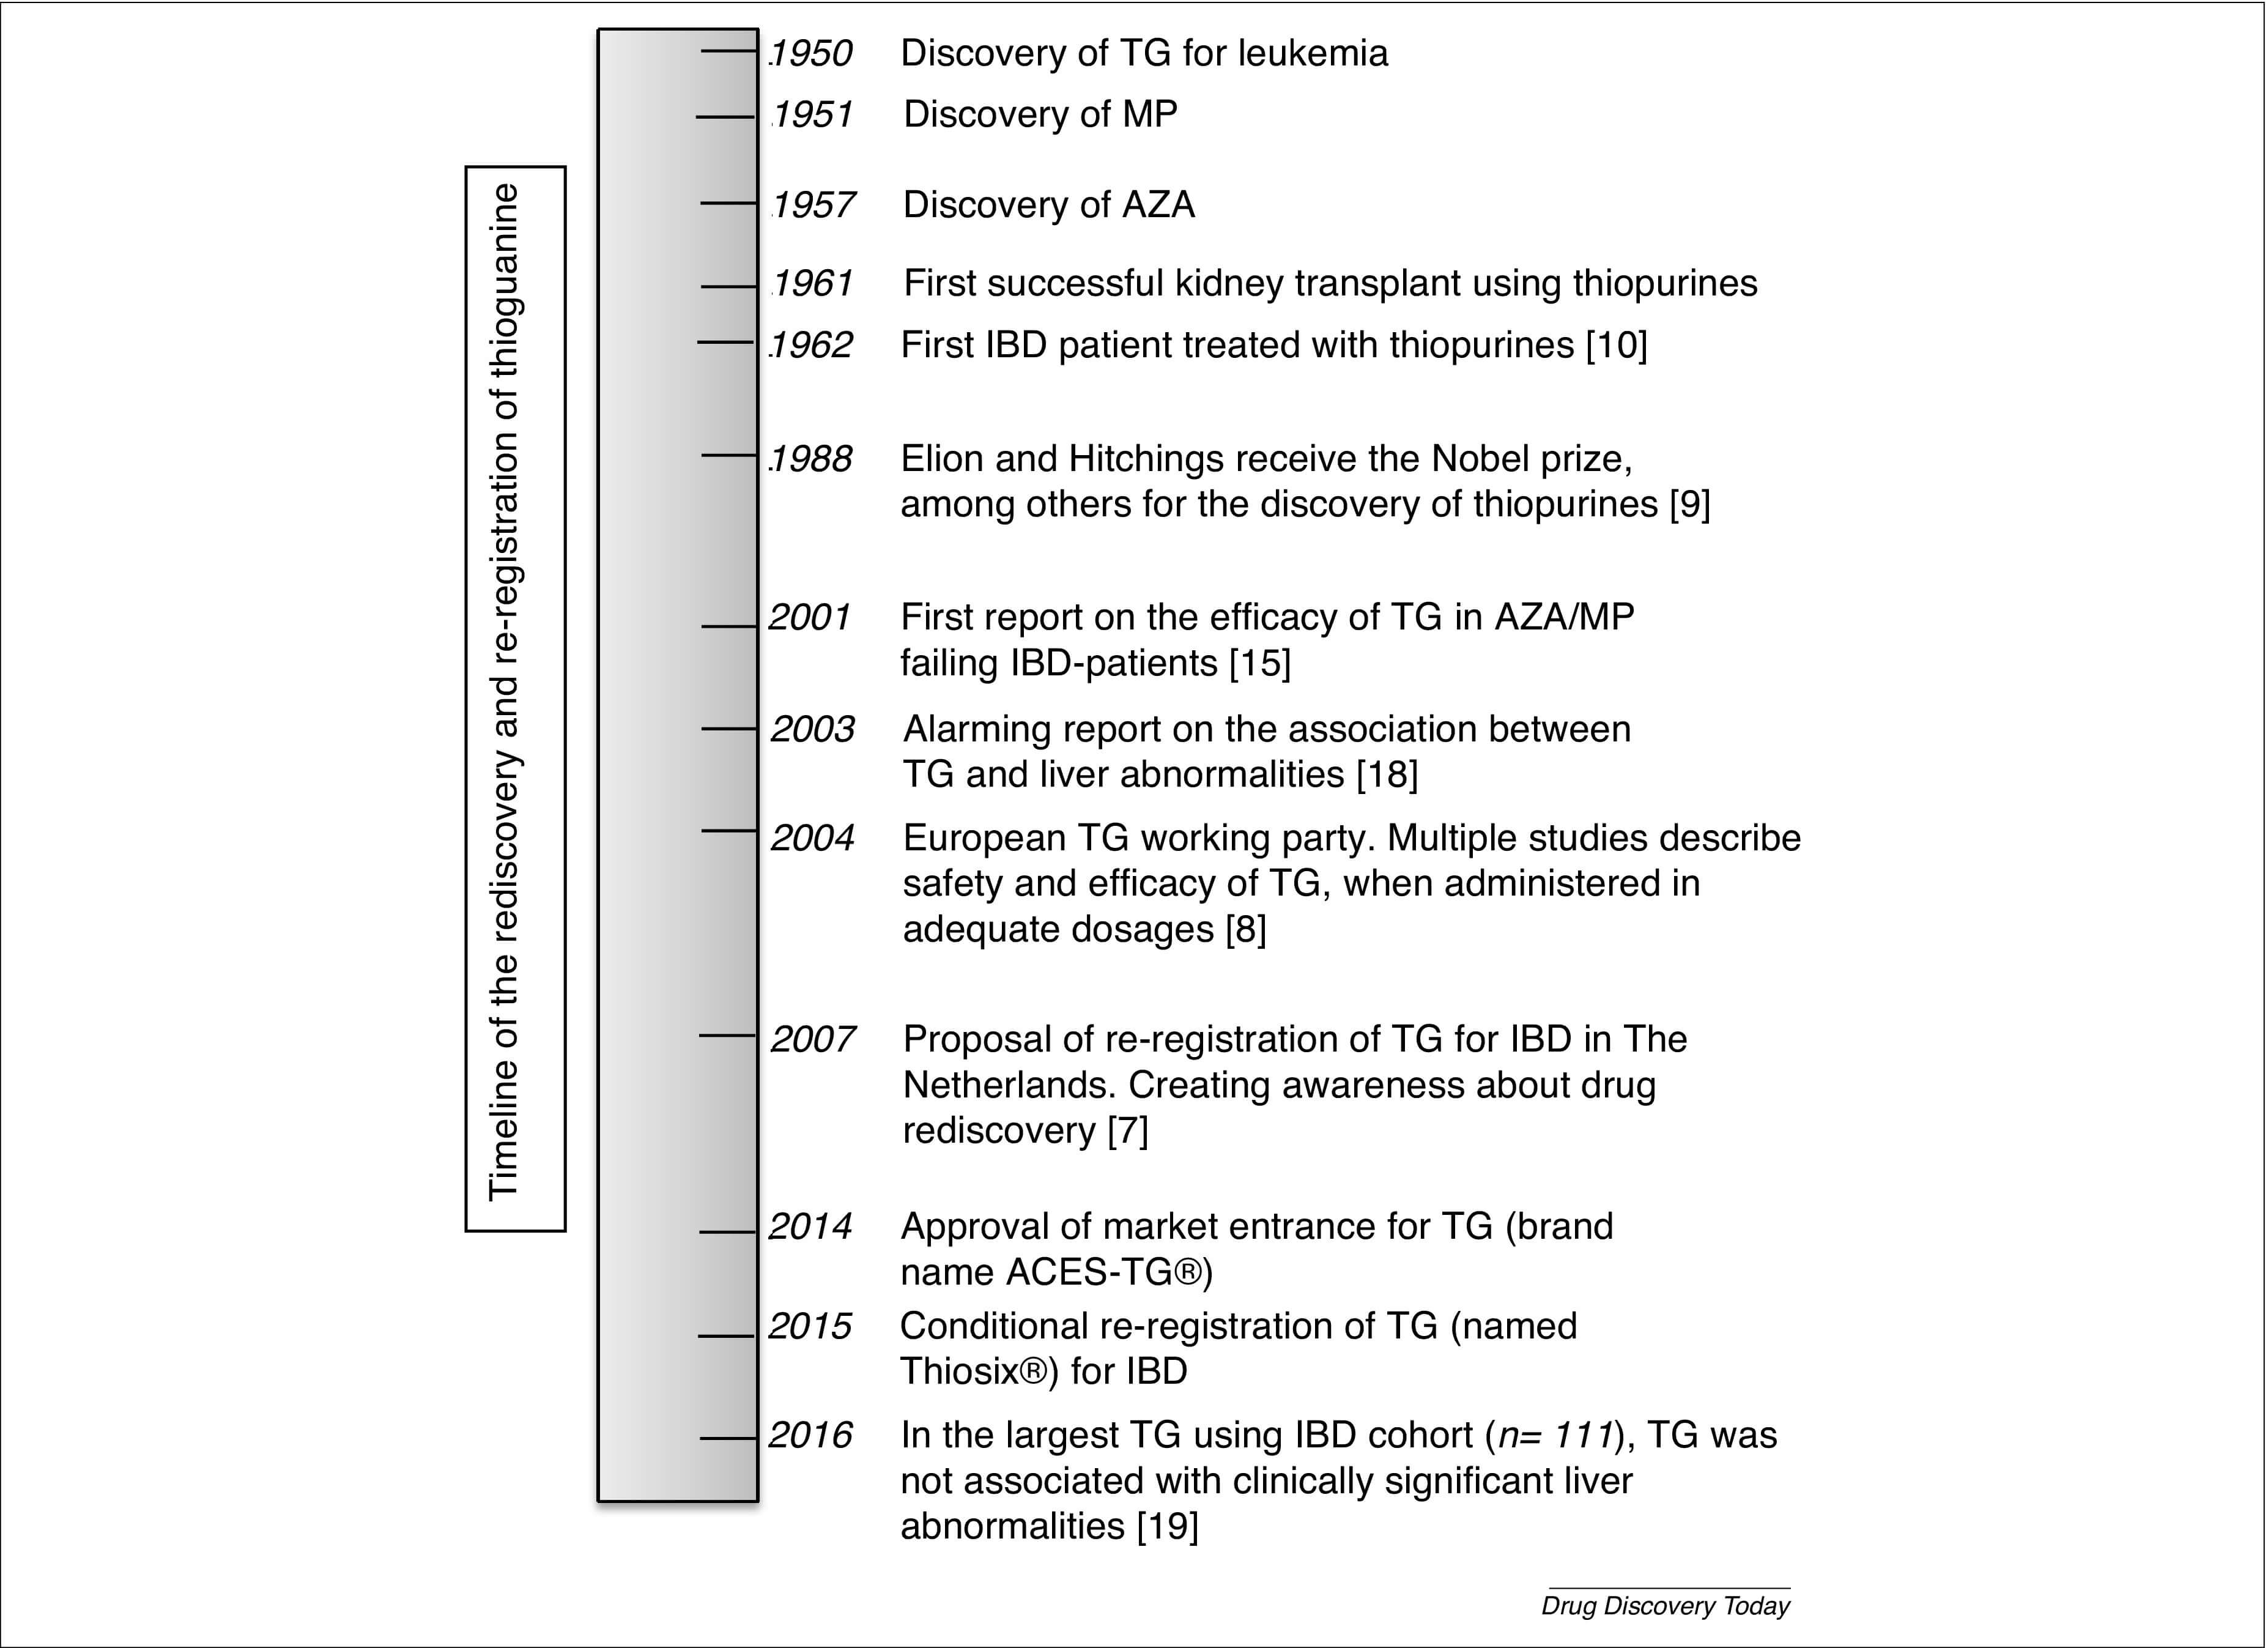 Figure 1. Timeline of thioguanine from discovery to rediscovery and re-registration